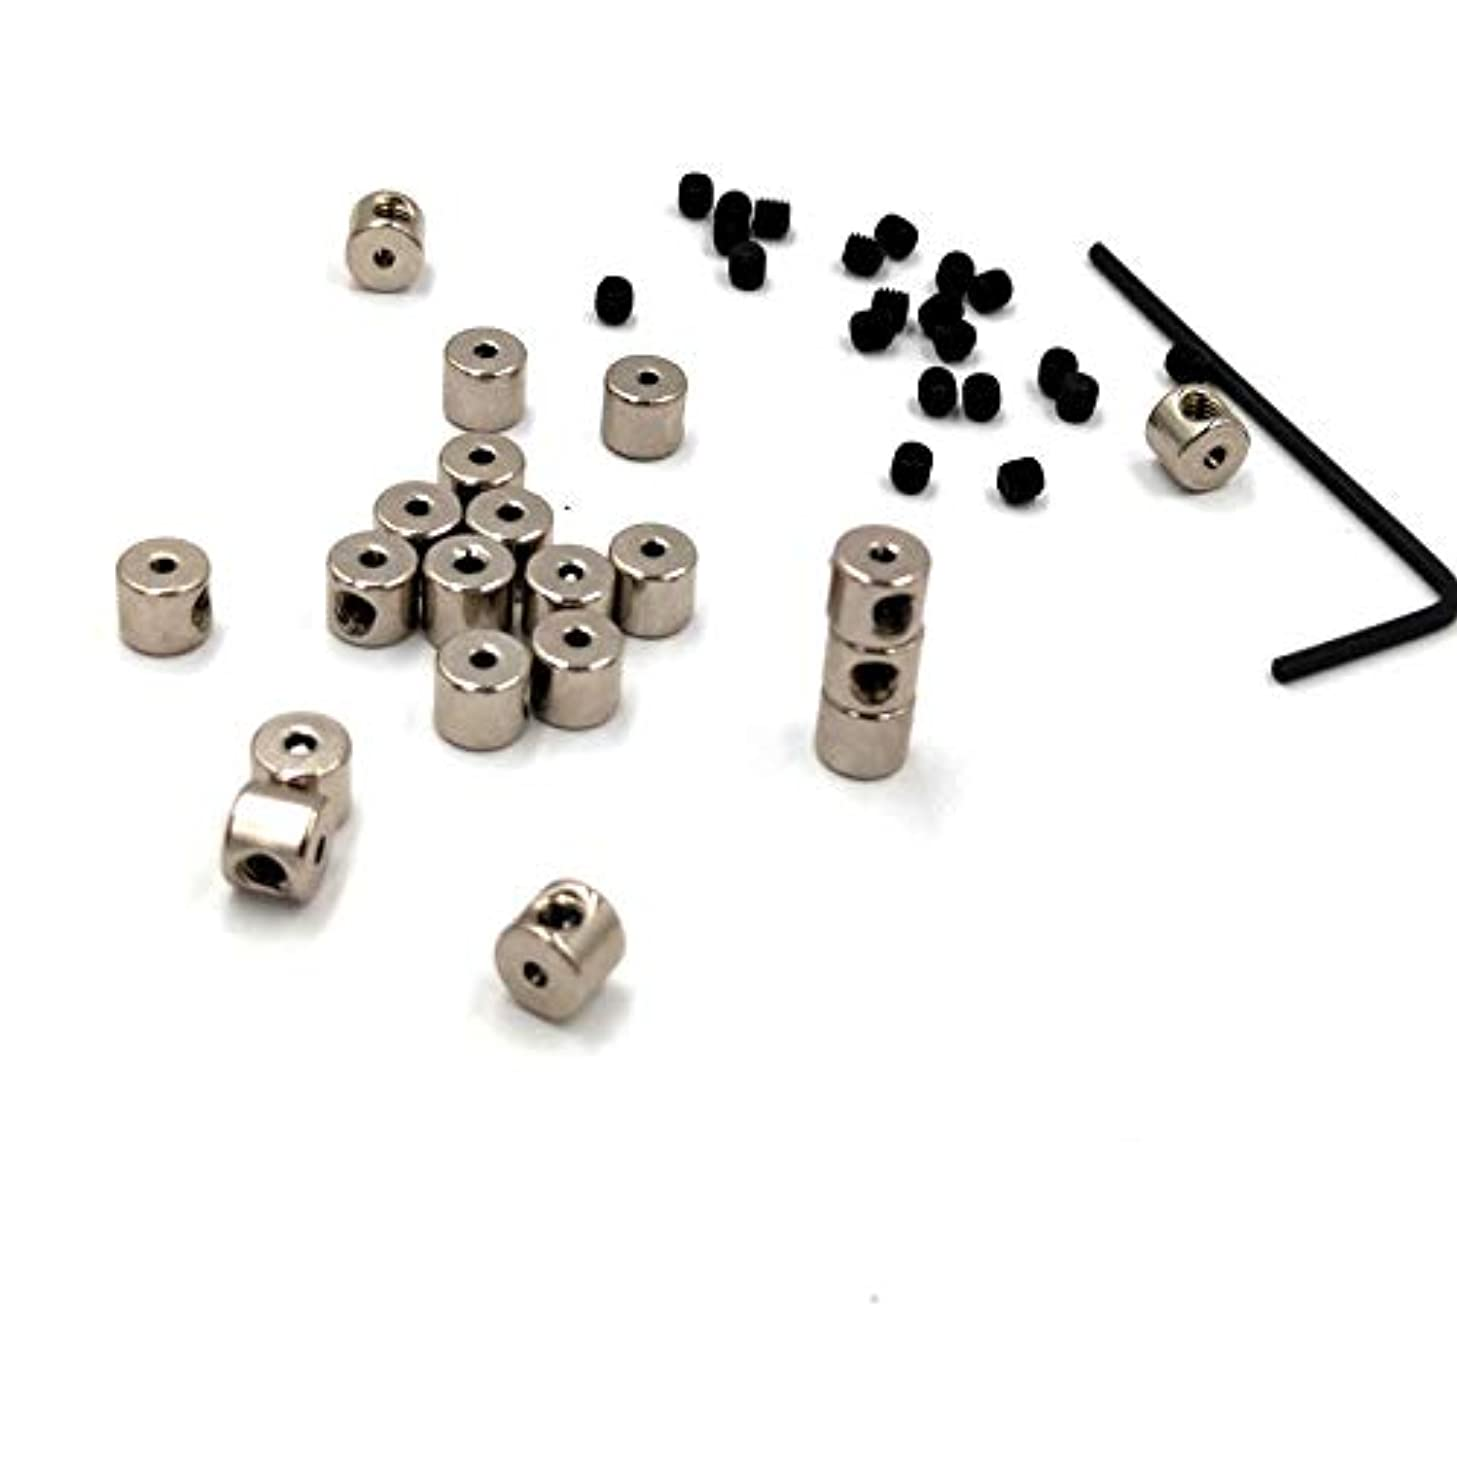 Ruchen 20pcs Pin Keepers Locking Pin Keepers Back with Wrench Biker Very Low Ship